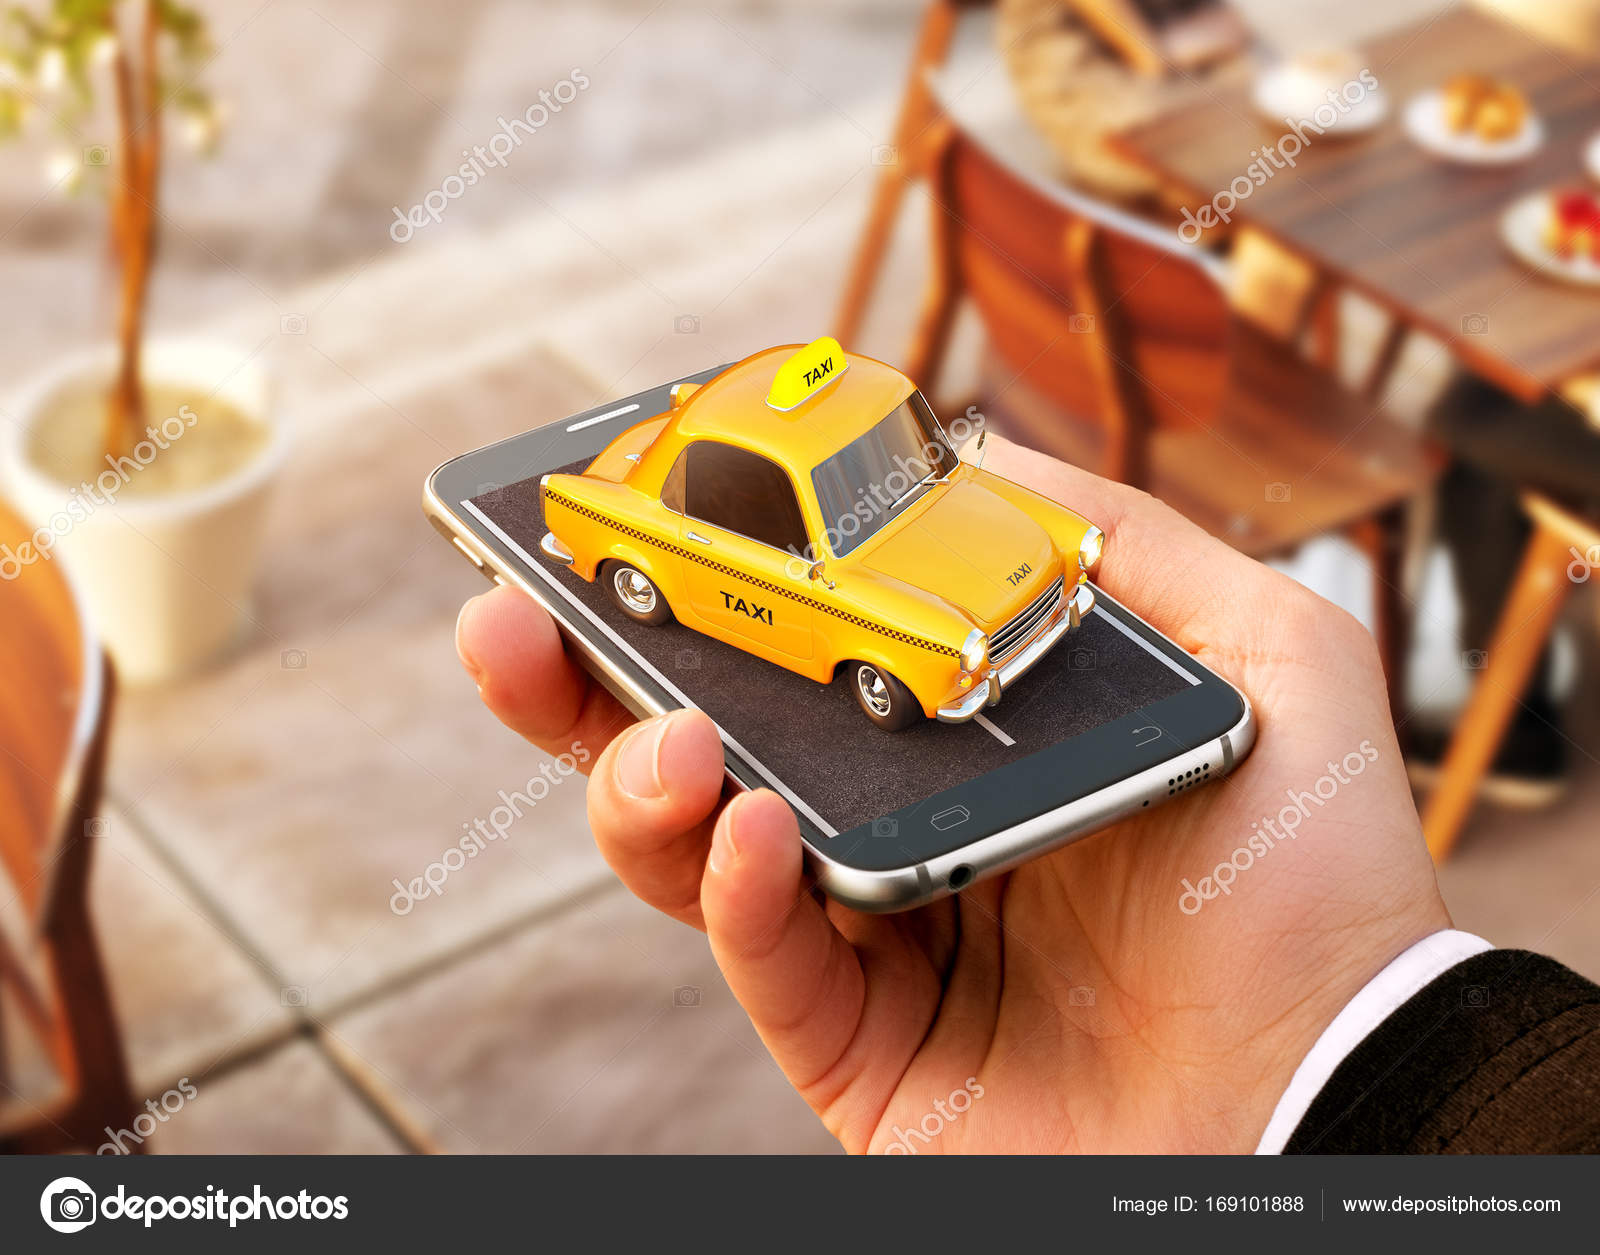 Smartphone application of taxi service for online searching calling